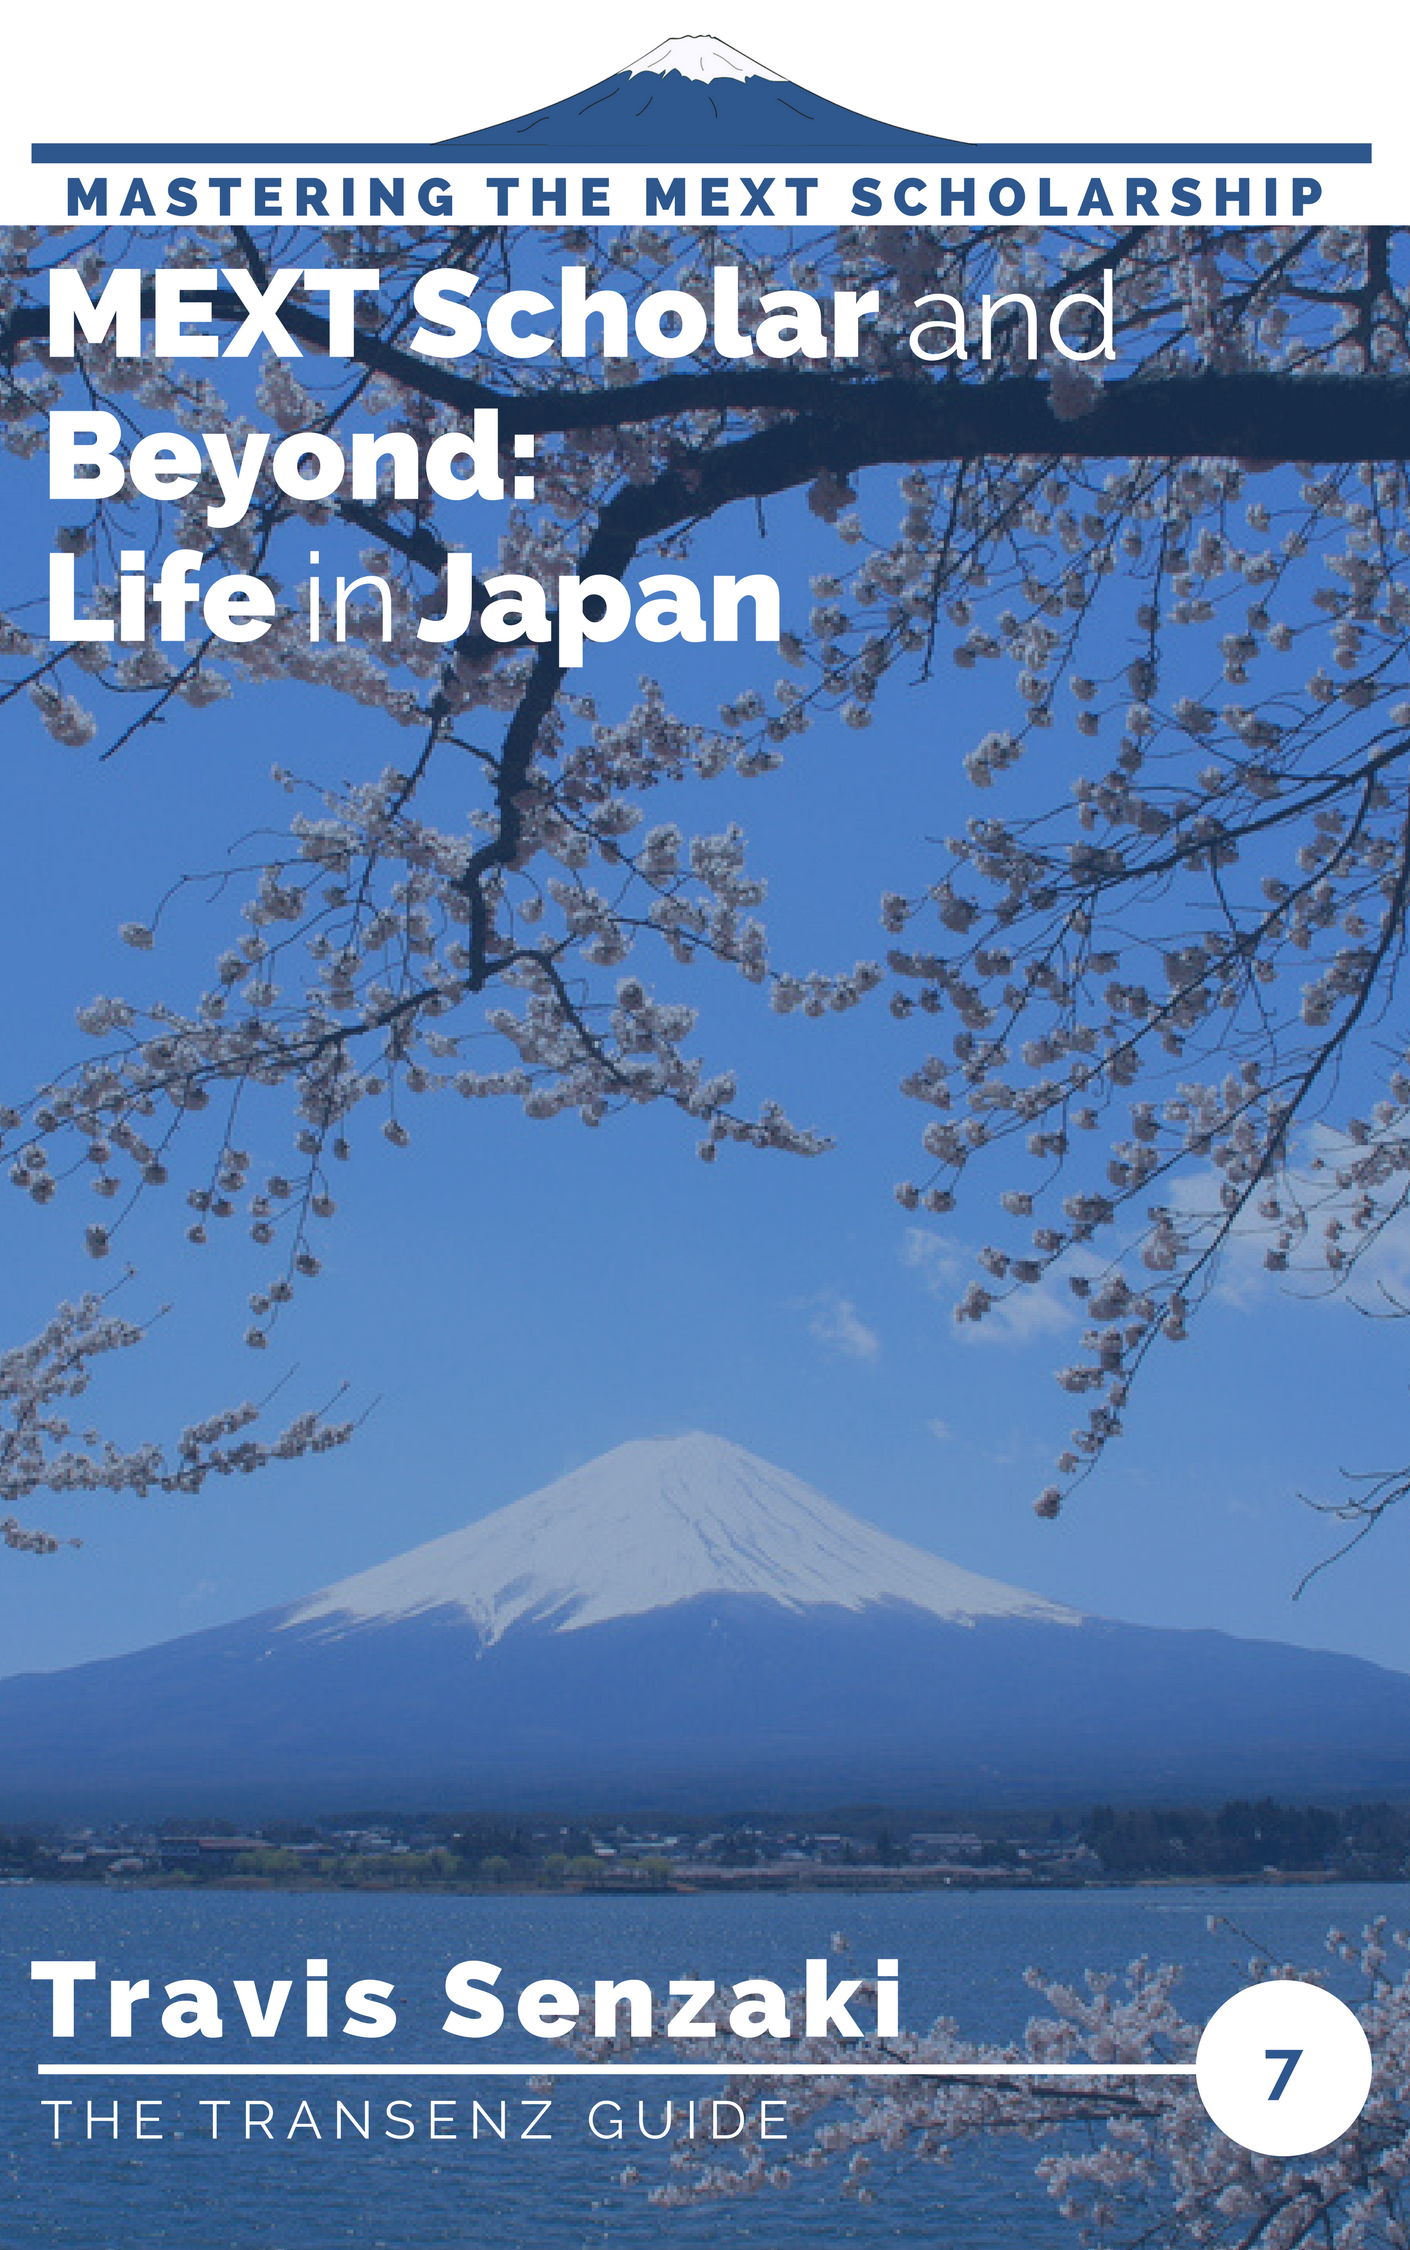 Everything you need to know about living in Japan and MEXT scholarship procedures including extending the MEXT scholarship